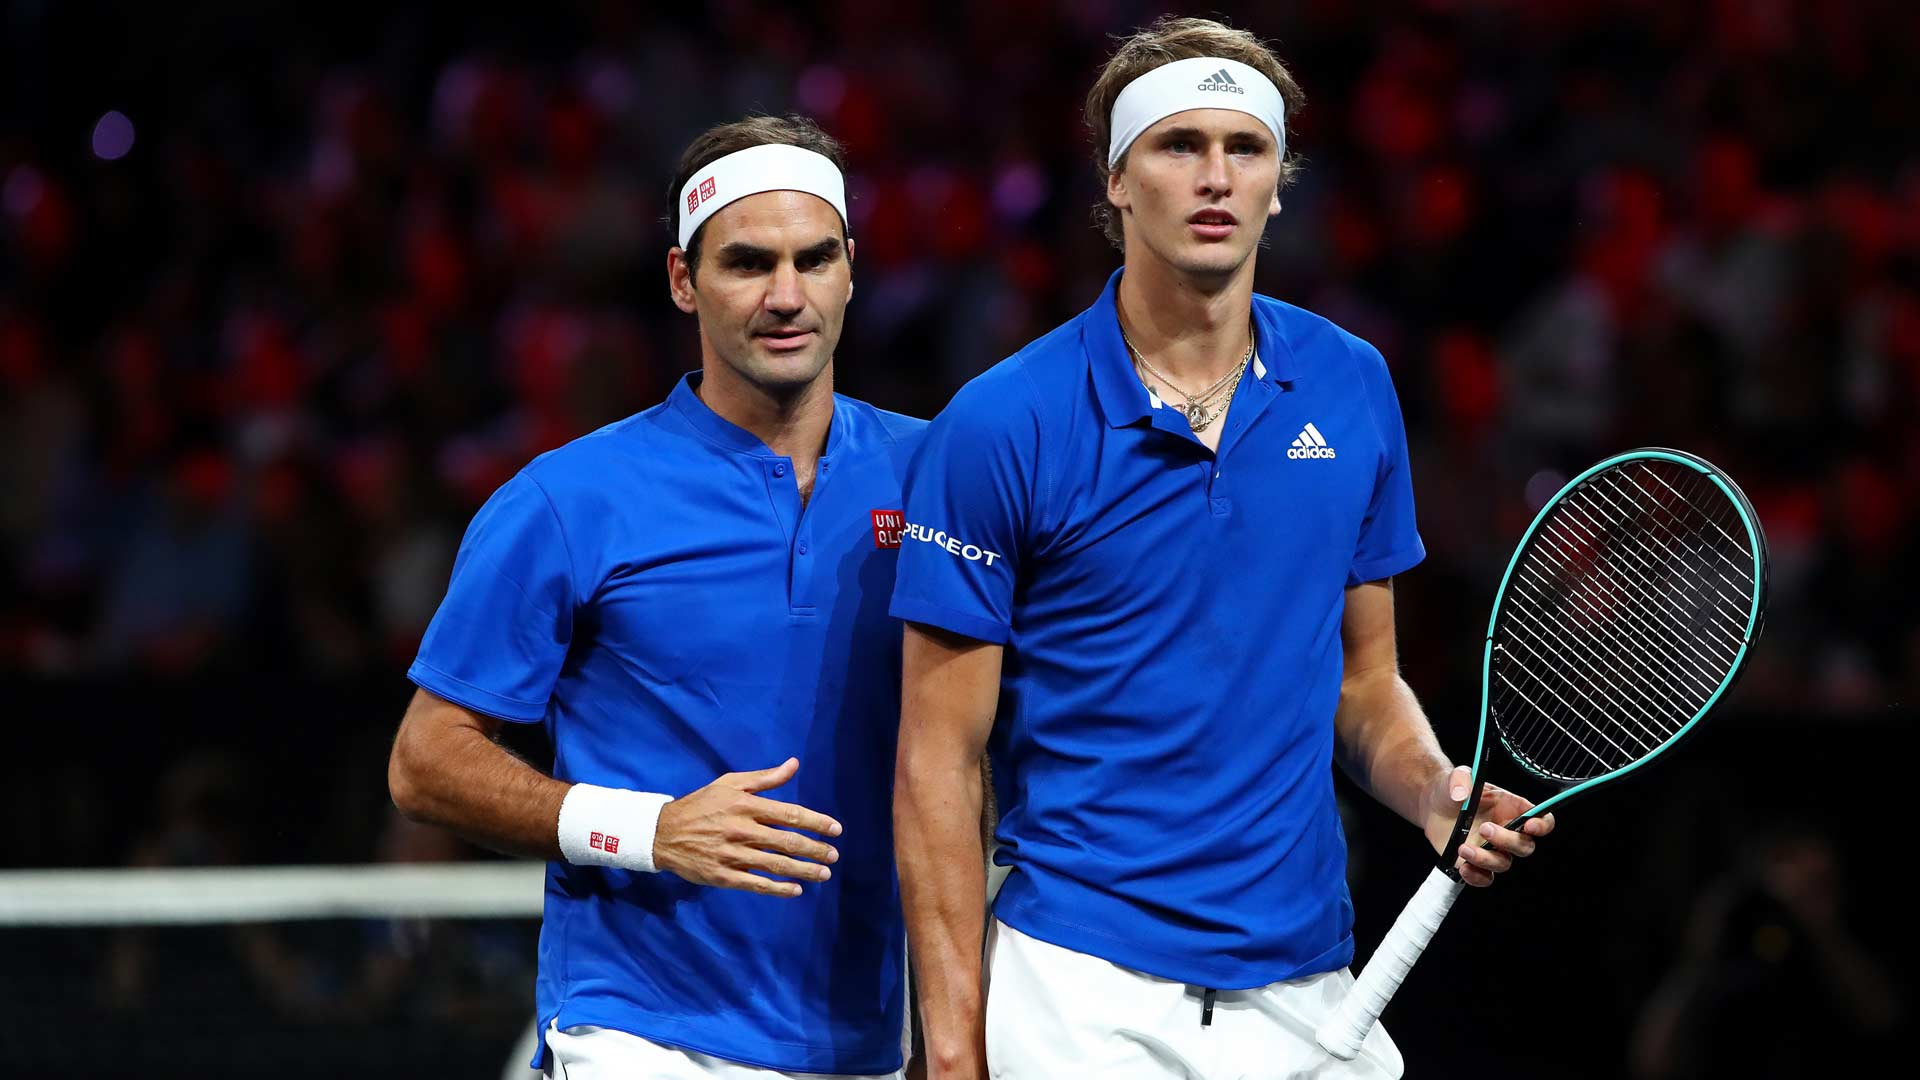 Roger Federer and Alexander Zverev in doubles action at Laver Cup 2019